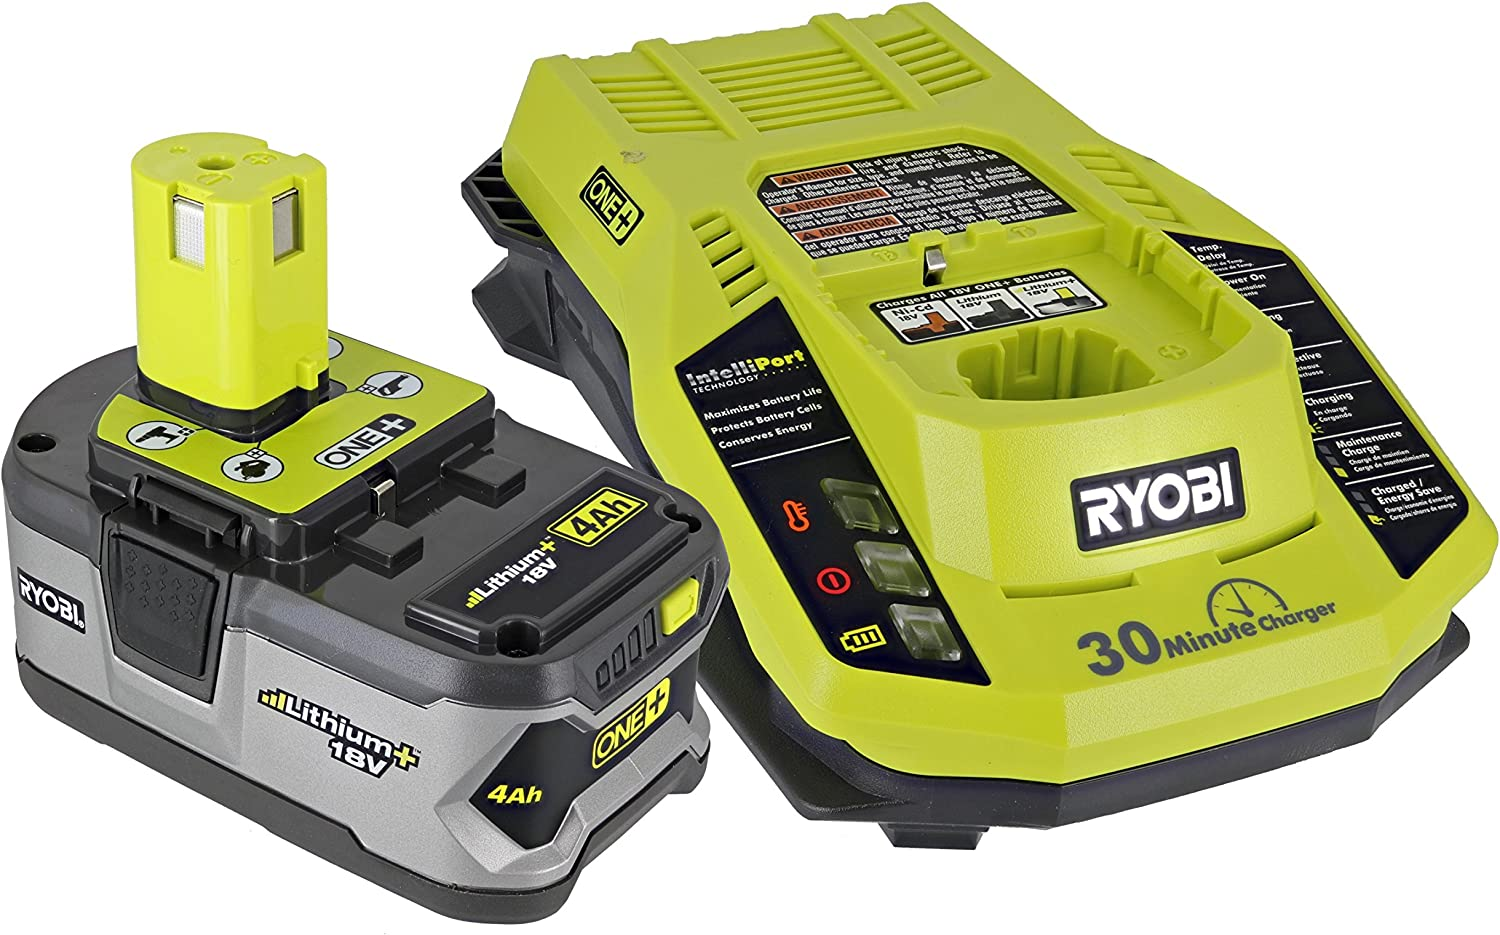 Ryobi P108 One+ Super intense SALE 18V 4.0AH Ranking TOP4 Lithium Dual and P117 Battery Ion